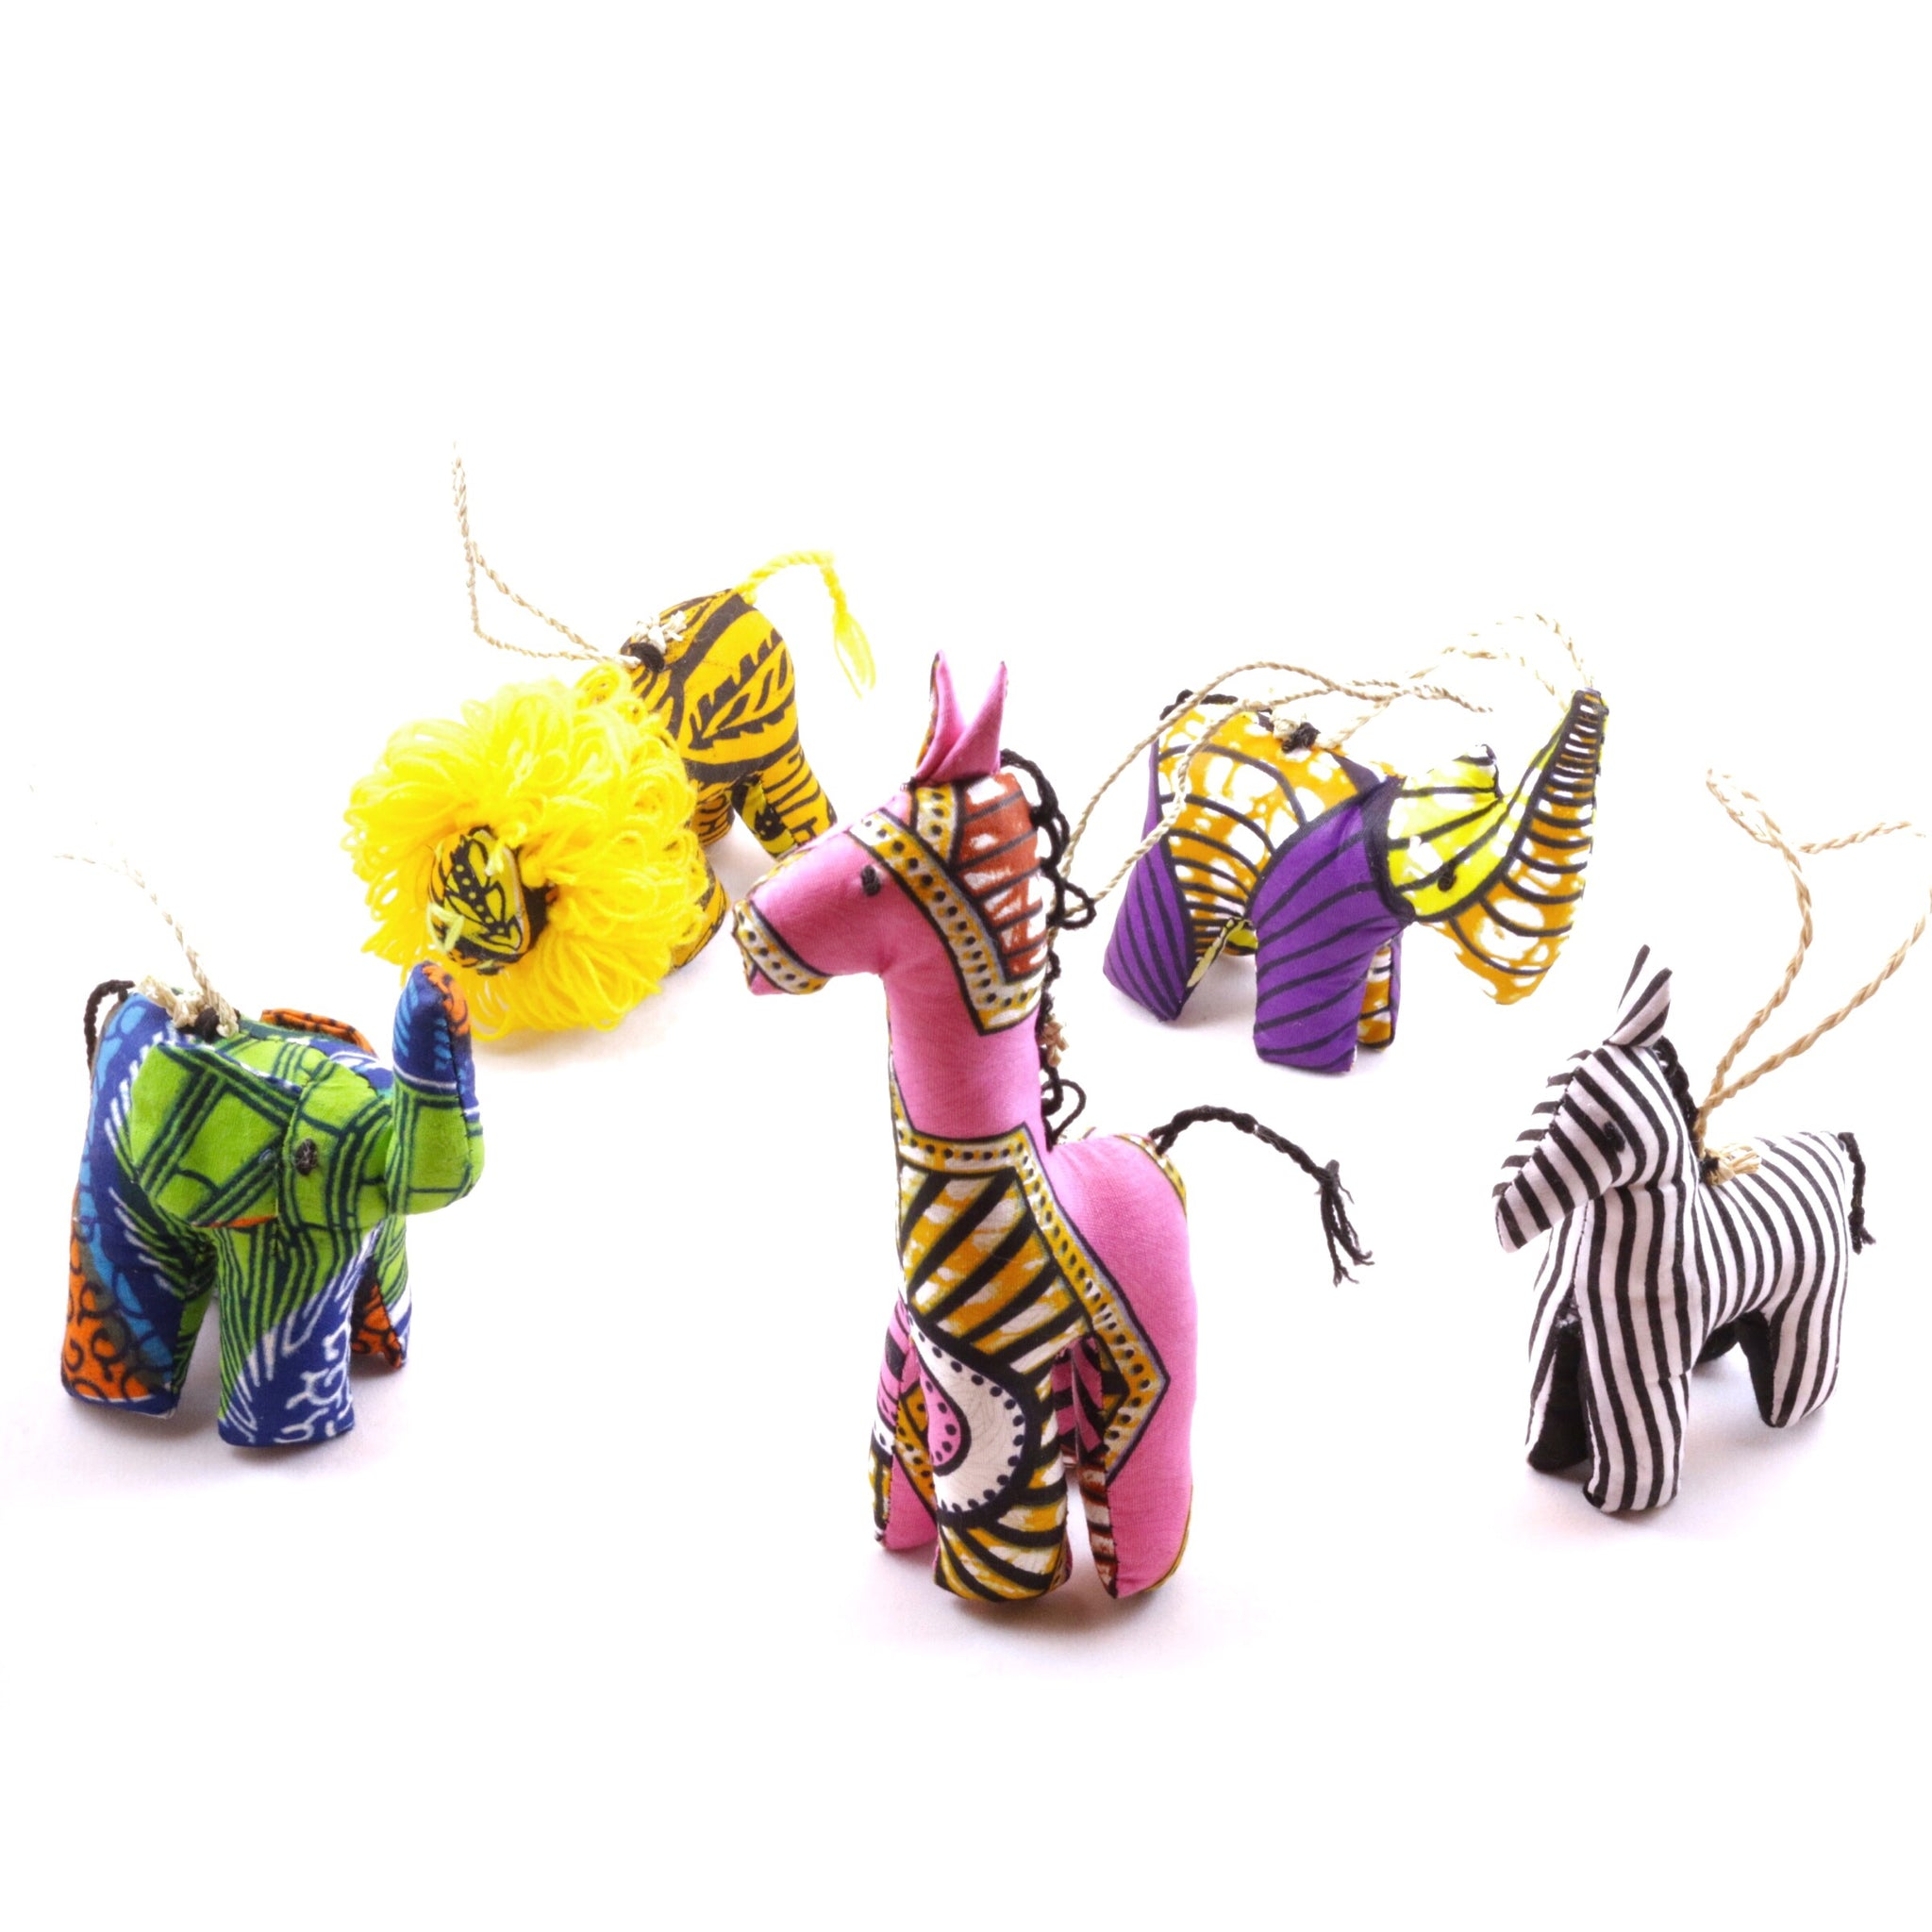 Stuffed Animal Ornament Set - Bright